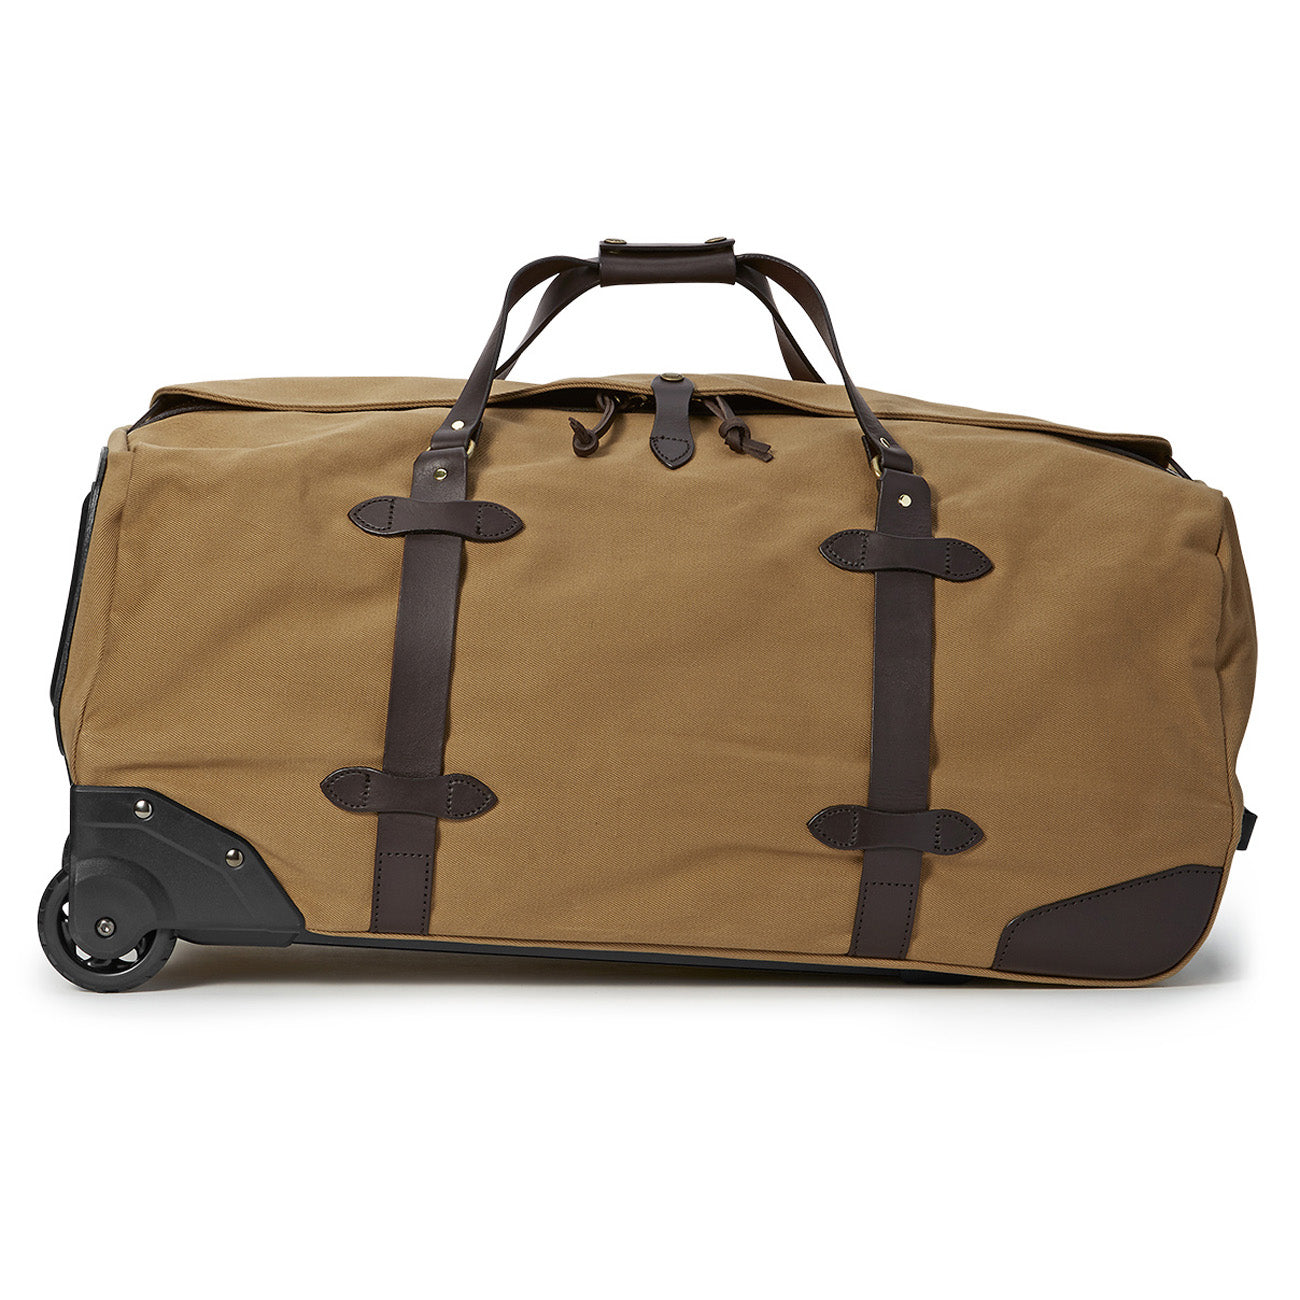 Filson Large Rugged Twill Rolling Duffle Bag Tan